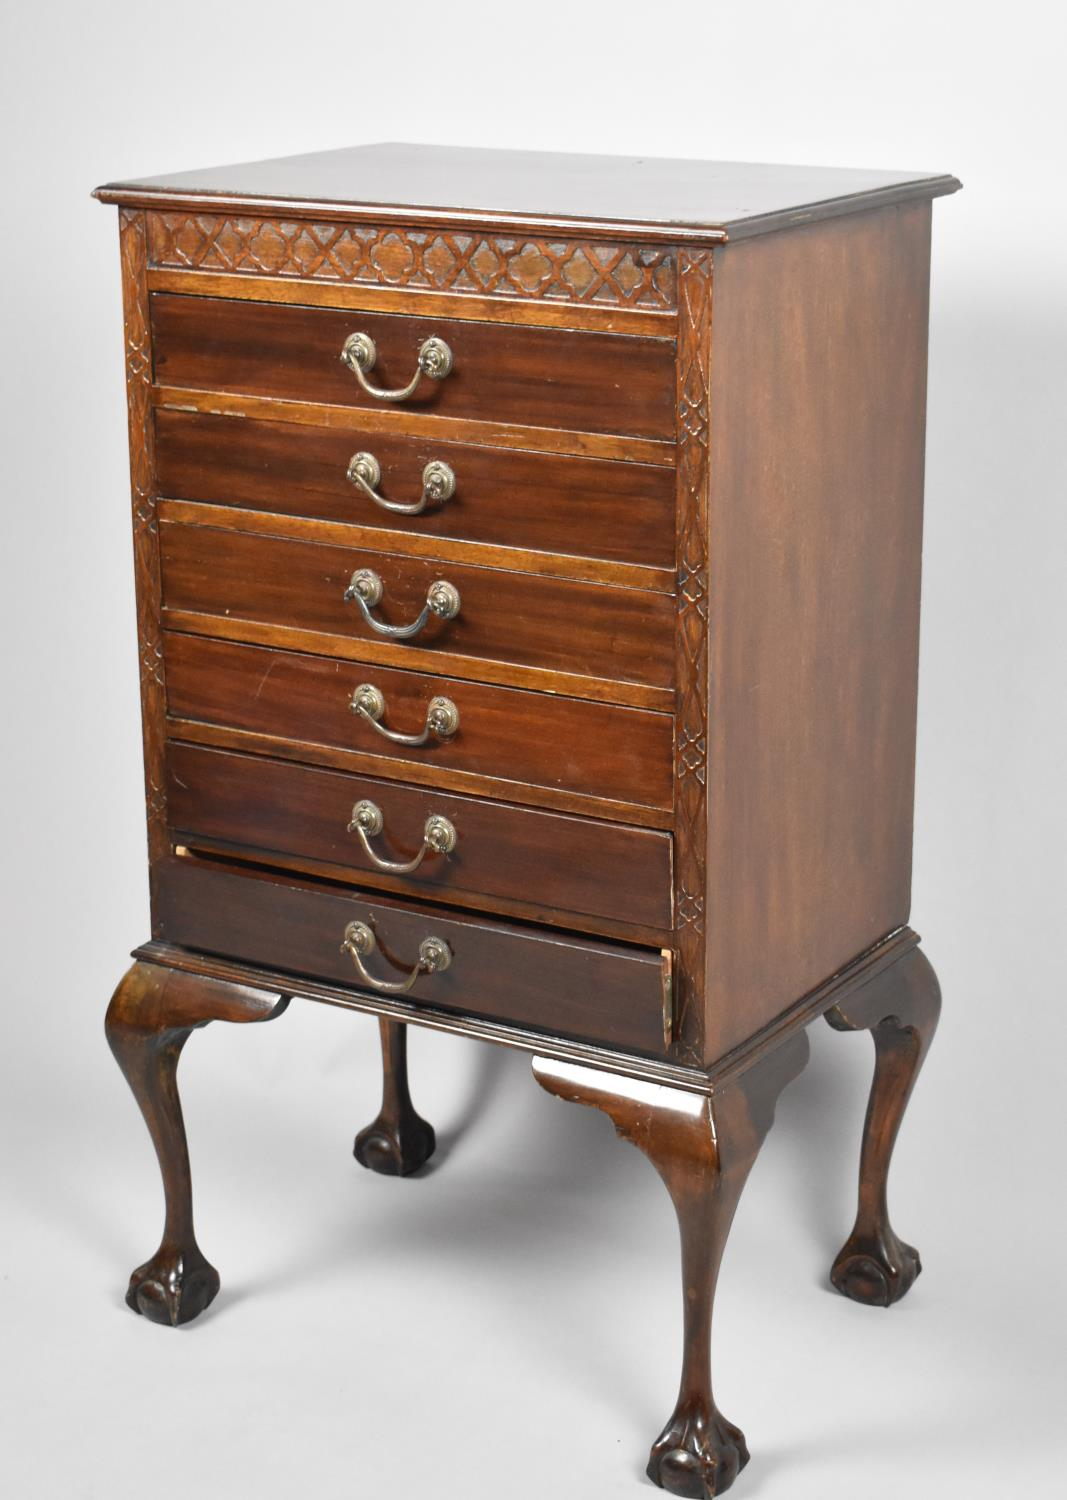 An Edwardian Mahogany Six Drawer Music Chest on Short Cabriole Supports with Claw and Ball Feet, - Image 2 of 2